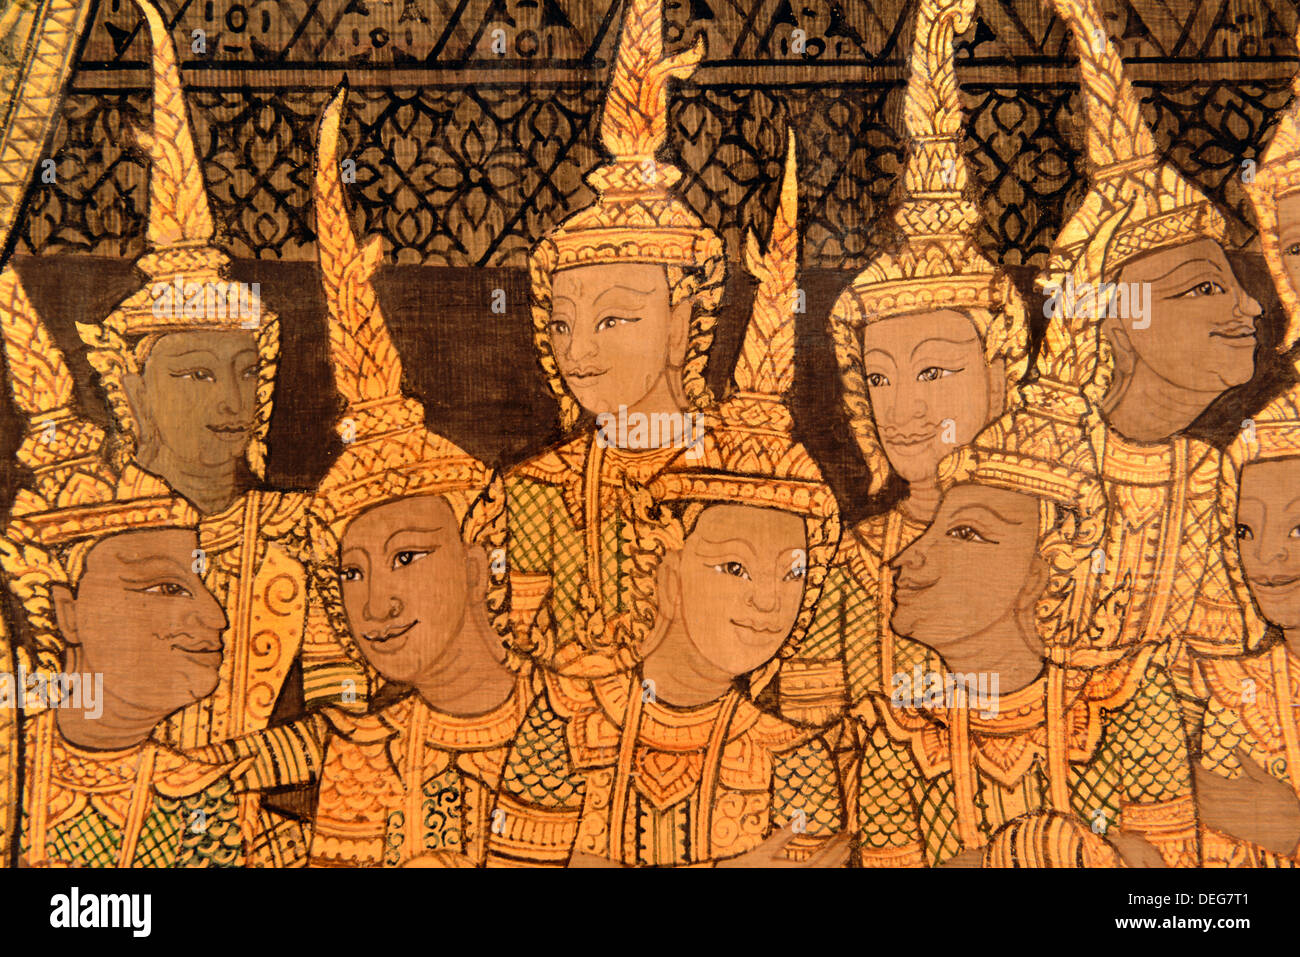 Detail of the murals of Wat Saket in late Rattanakosin style, Bangkok, Thailand, Southeast Asia, Asia - Stock Image